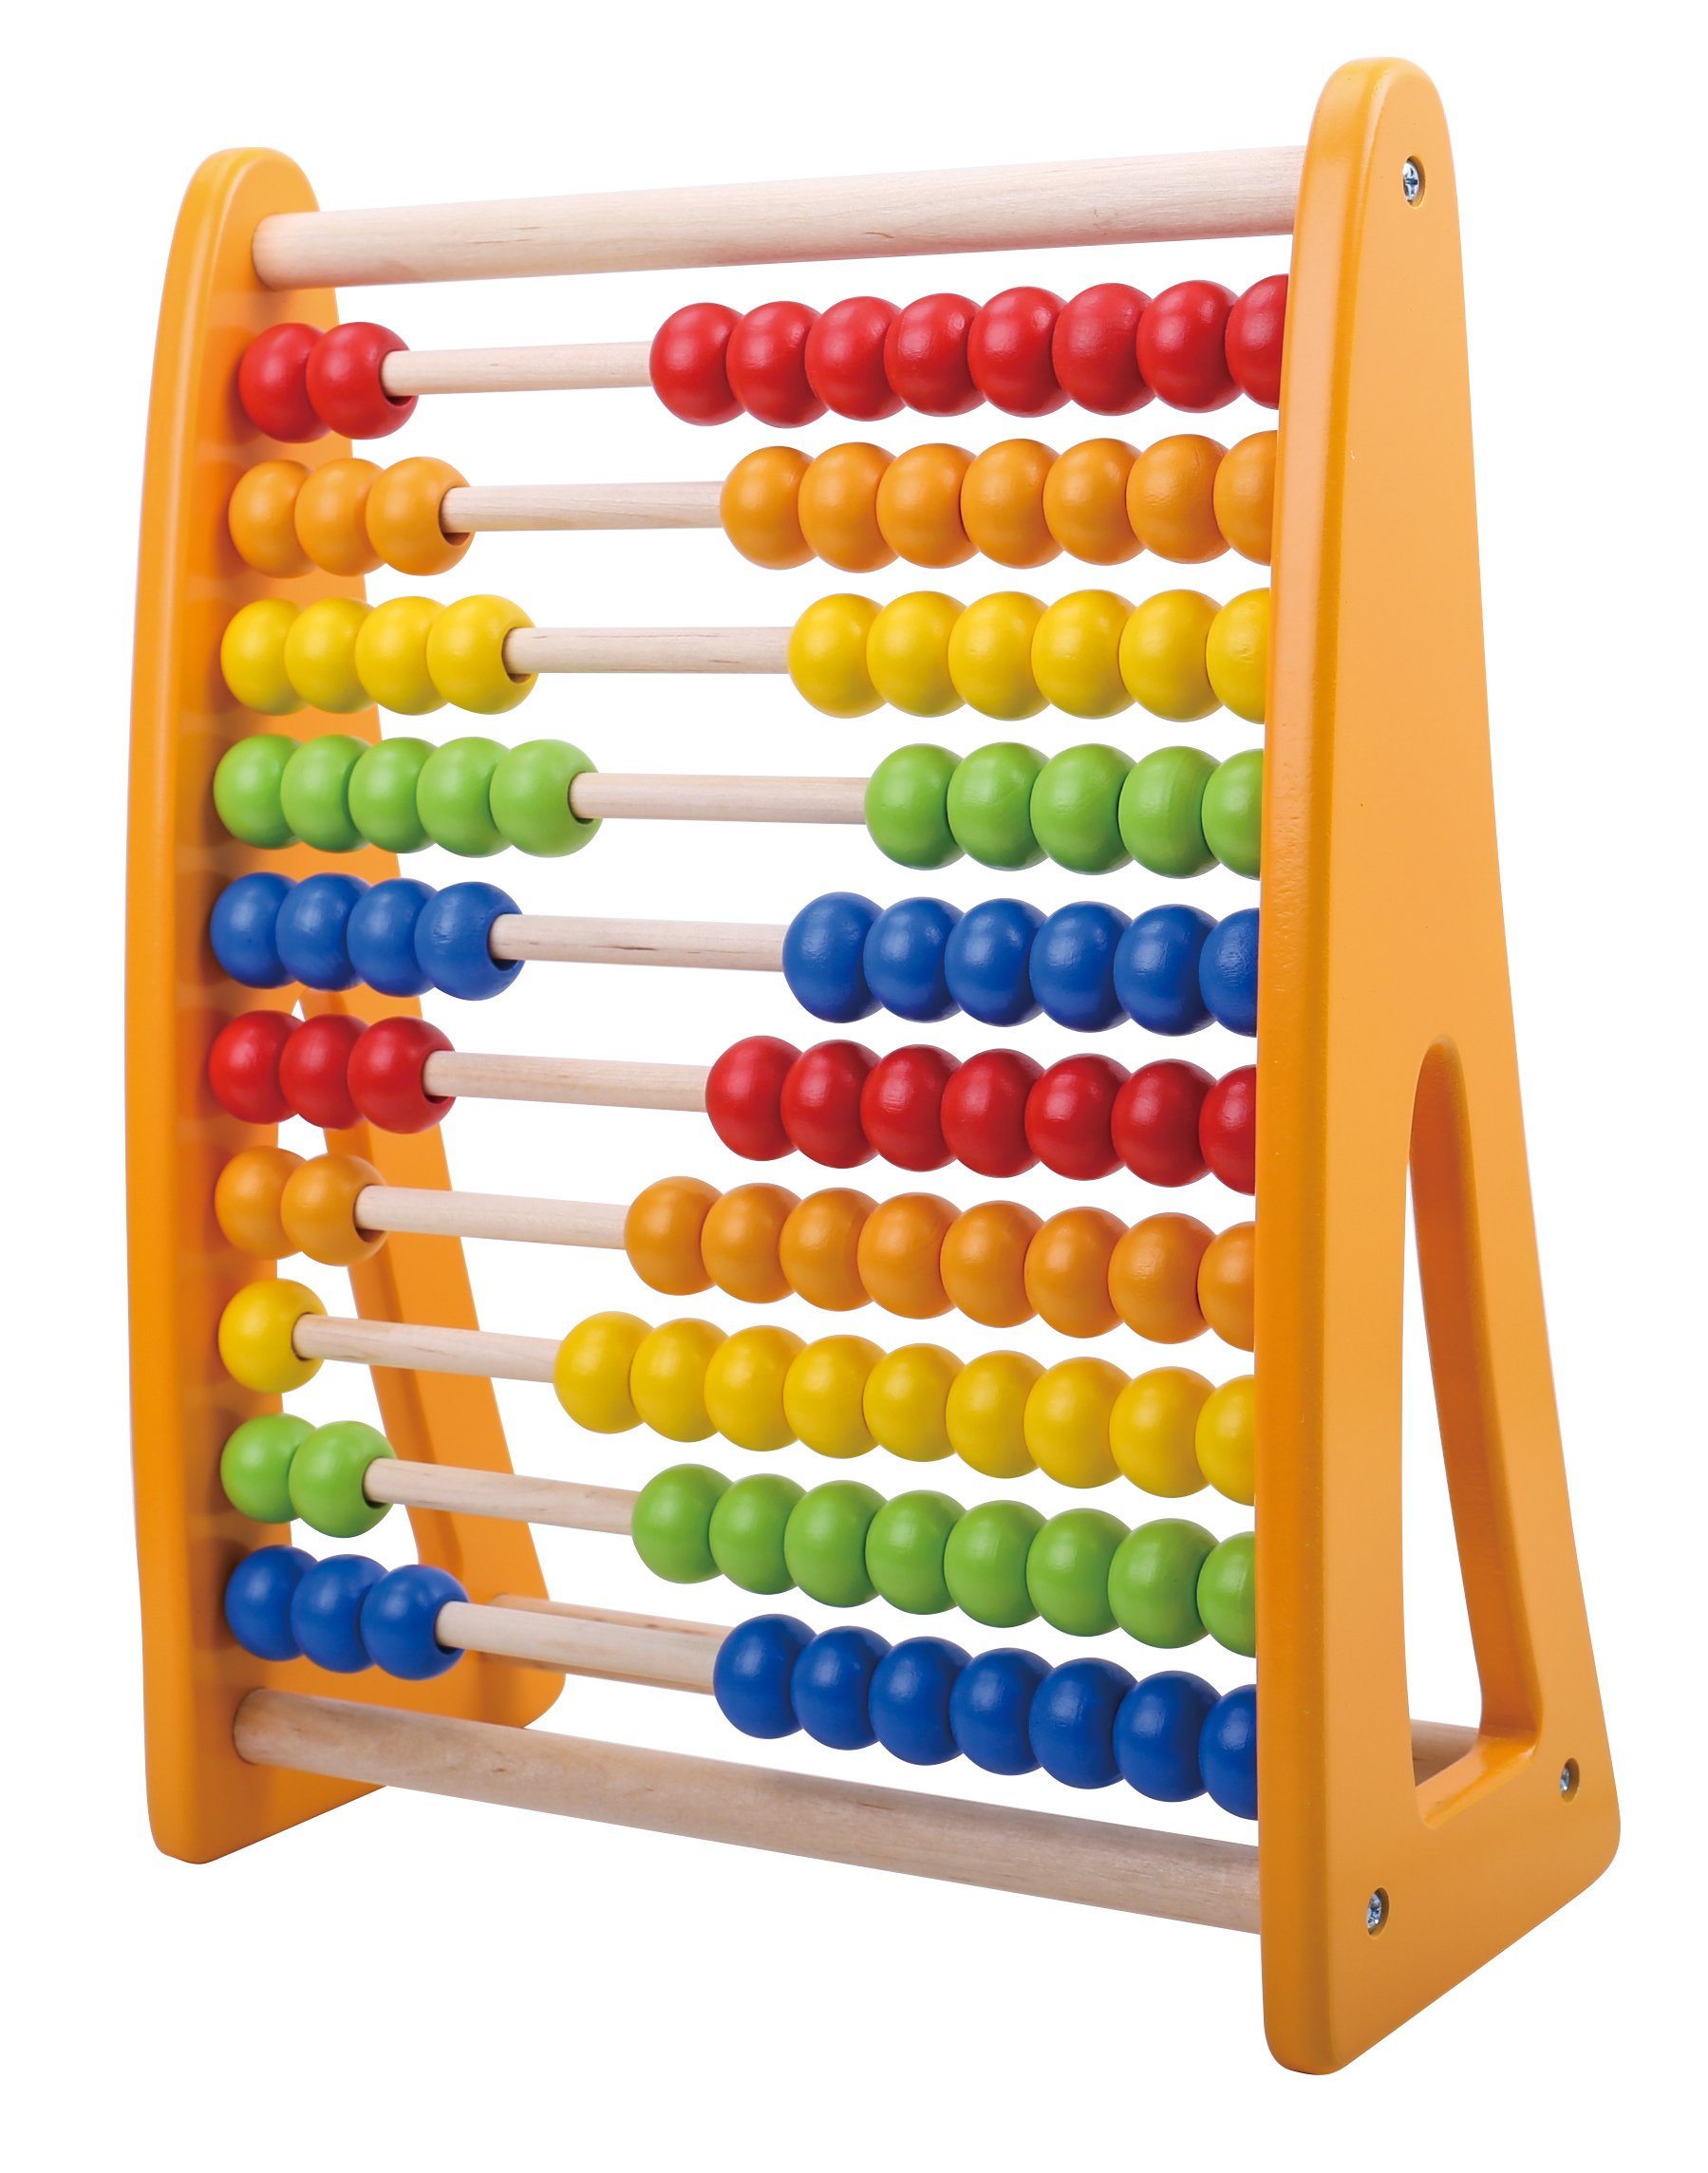 Pidoko Kids 123 Learning Abacus Toy - Math Manipulatives Numbers Counting Beads   Educational Toys for Toddlers - Preschool Boys and Girls 2 Year Olds and Up